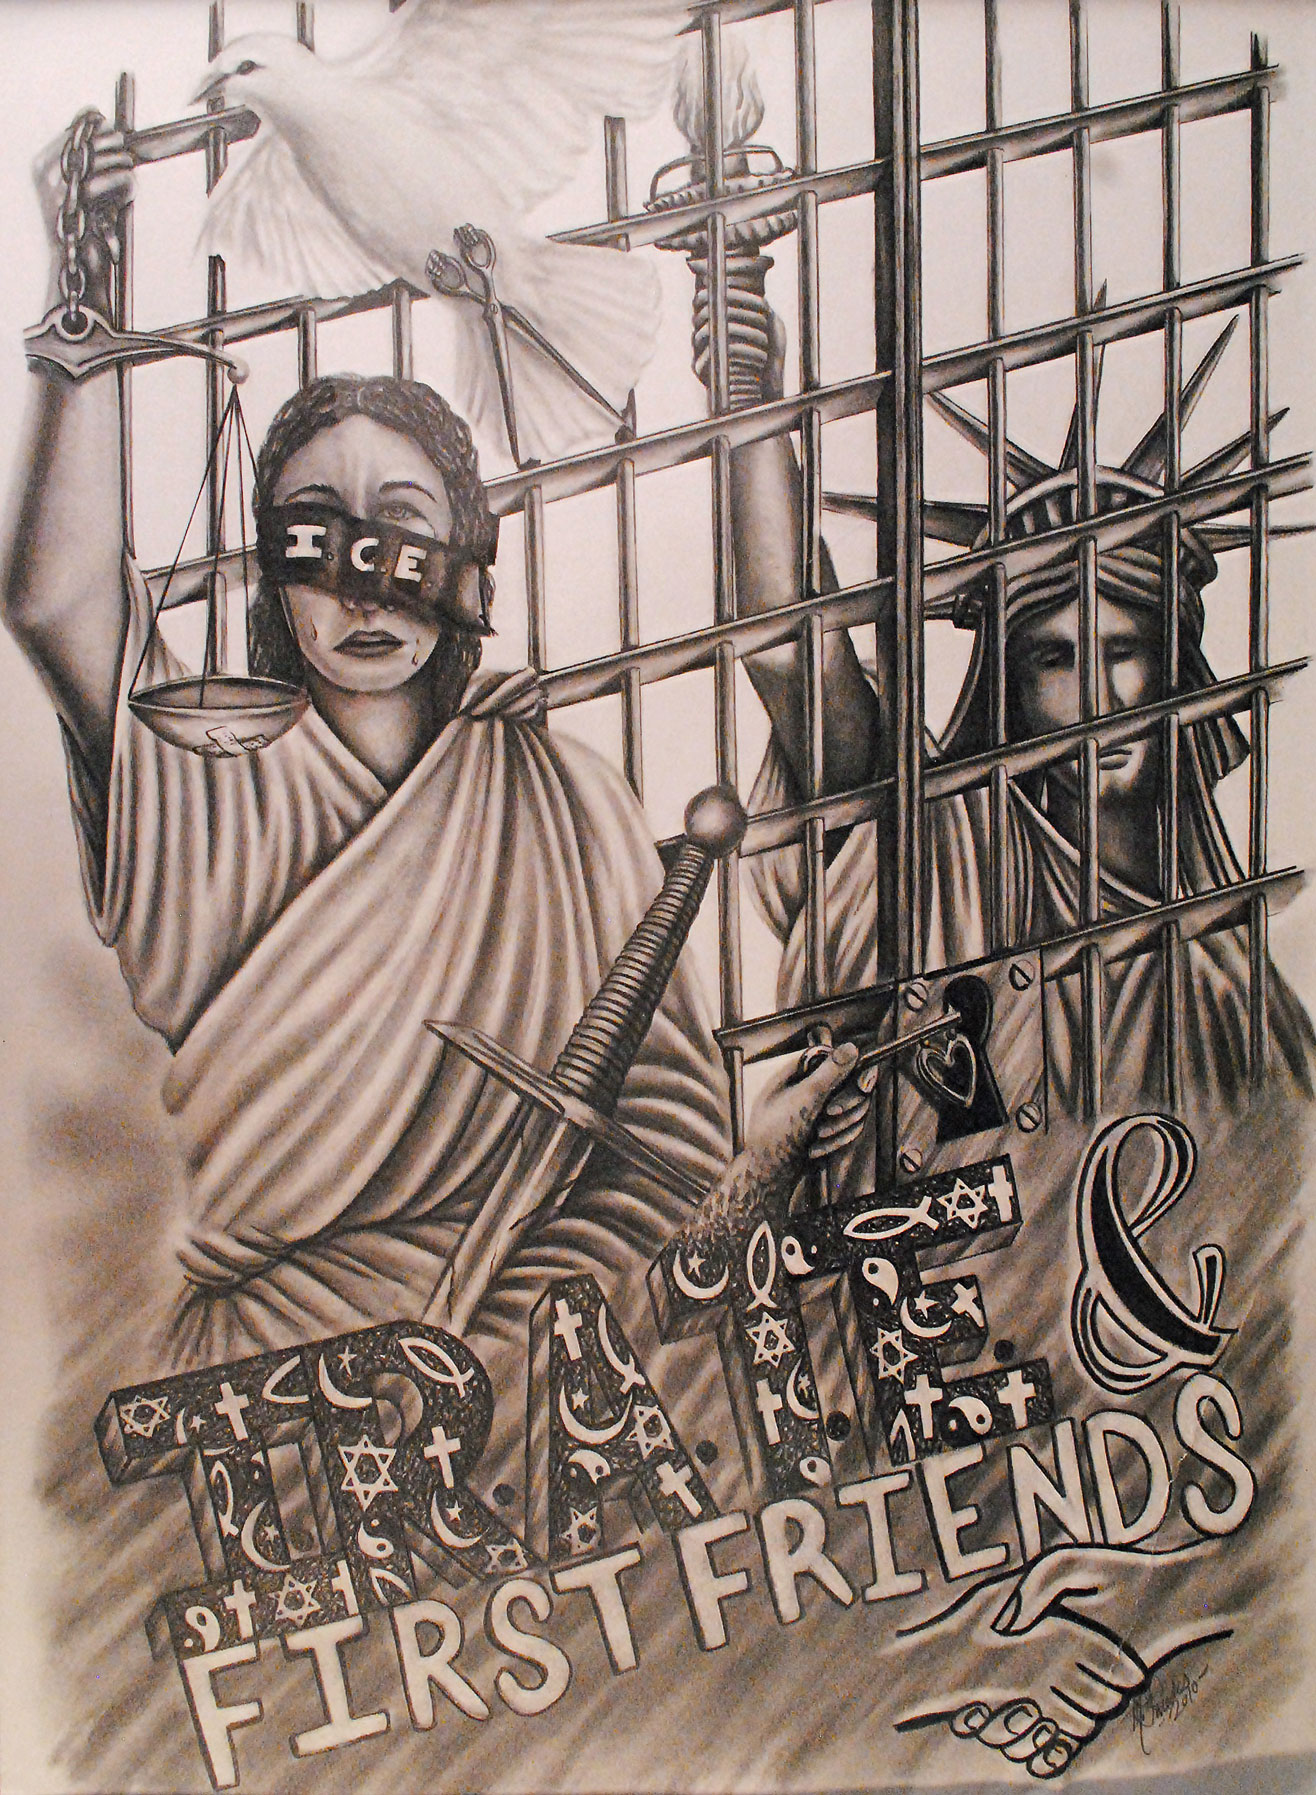 Making Art, Resisting Detention | States of Incarceration